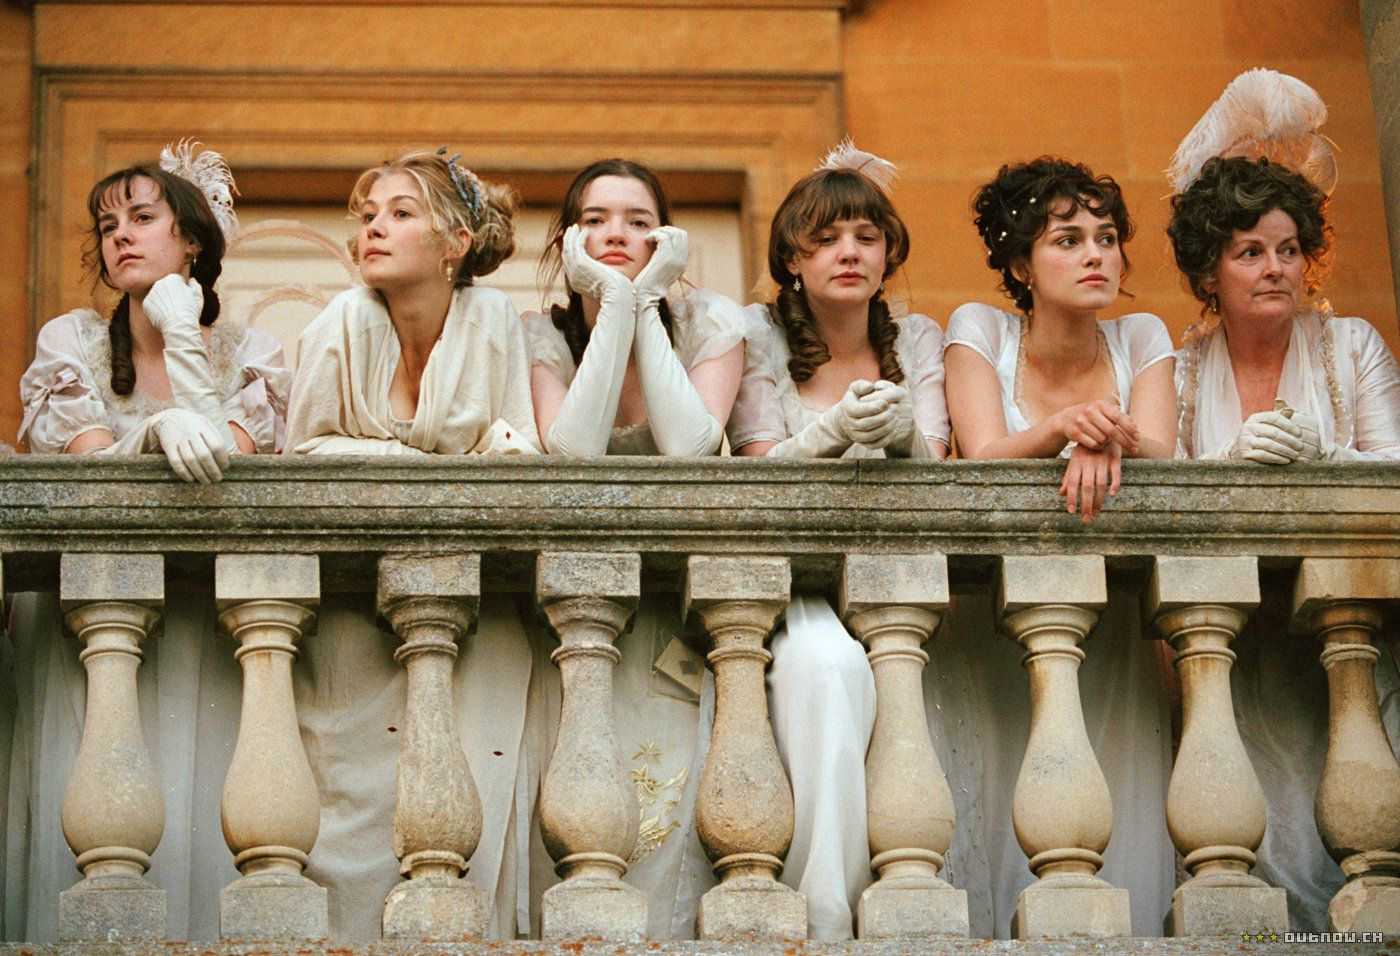 Pride & Prejudice (2005) The Bennet ladies #prideandprejudice